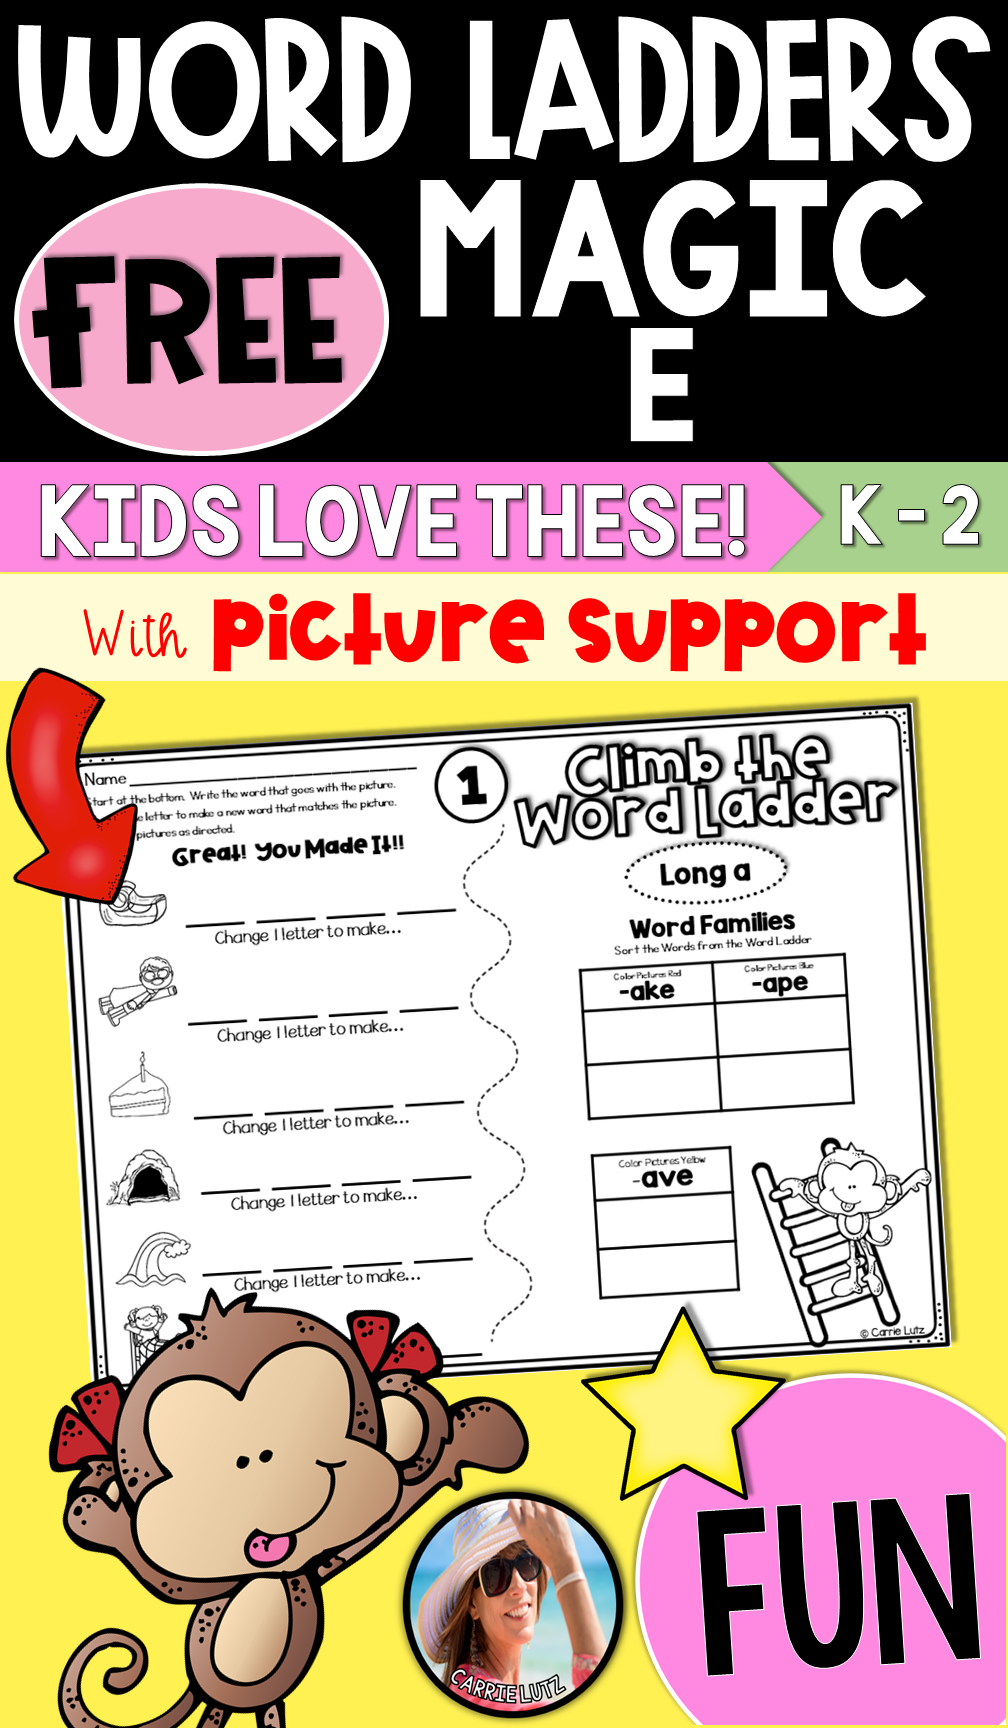 This Free Magic e Printable Worksheet / Activity makes learning FUN for  Kids in Kindergarten and First Grade. Ph…   Word ladders [ 1728 x 1008 Pixel ]